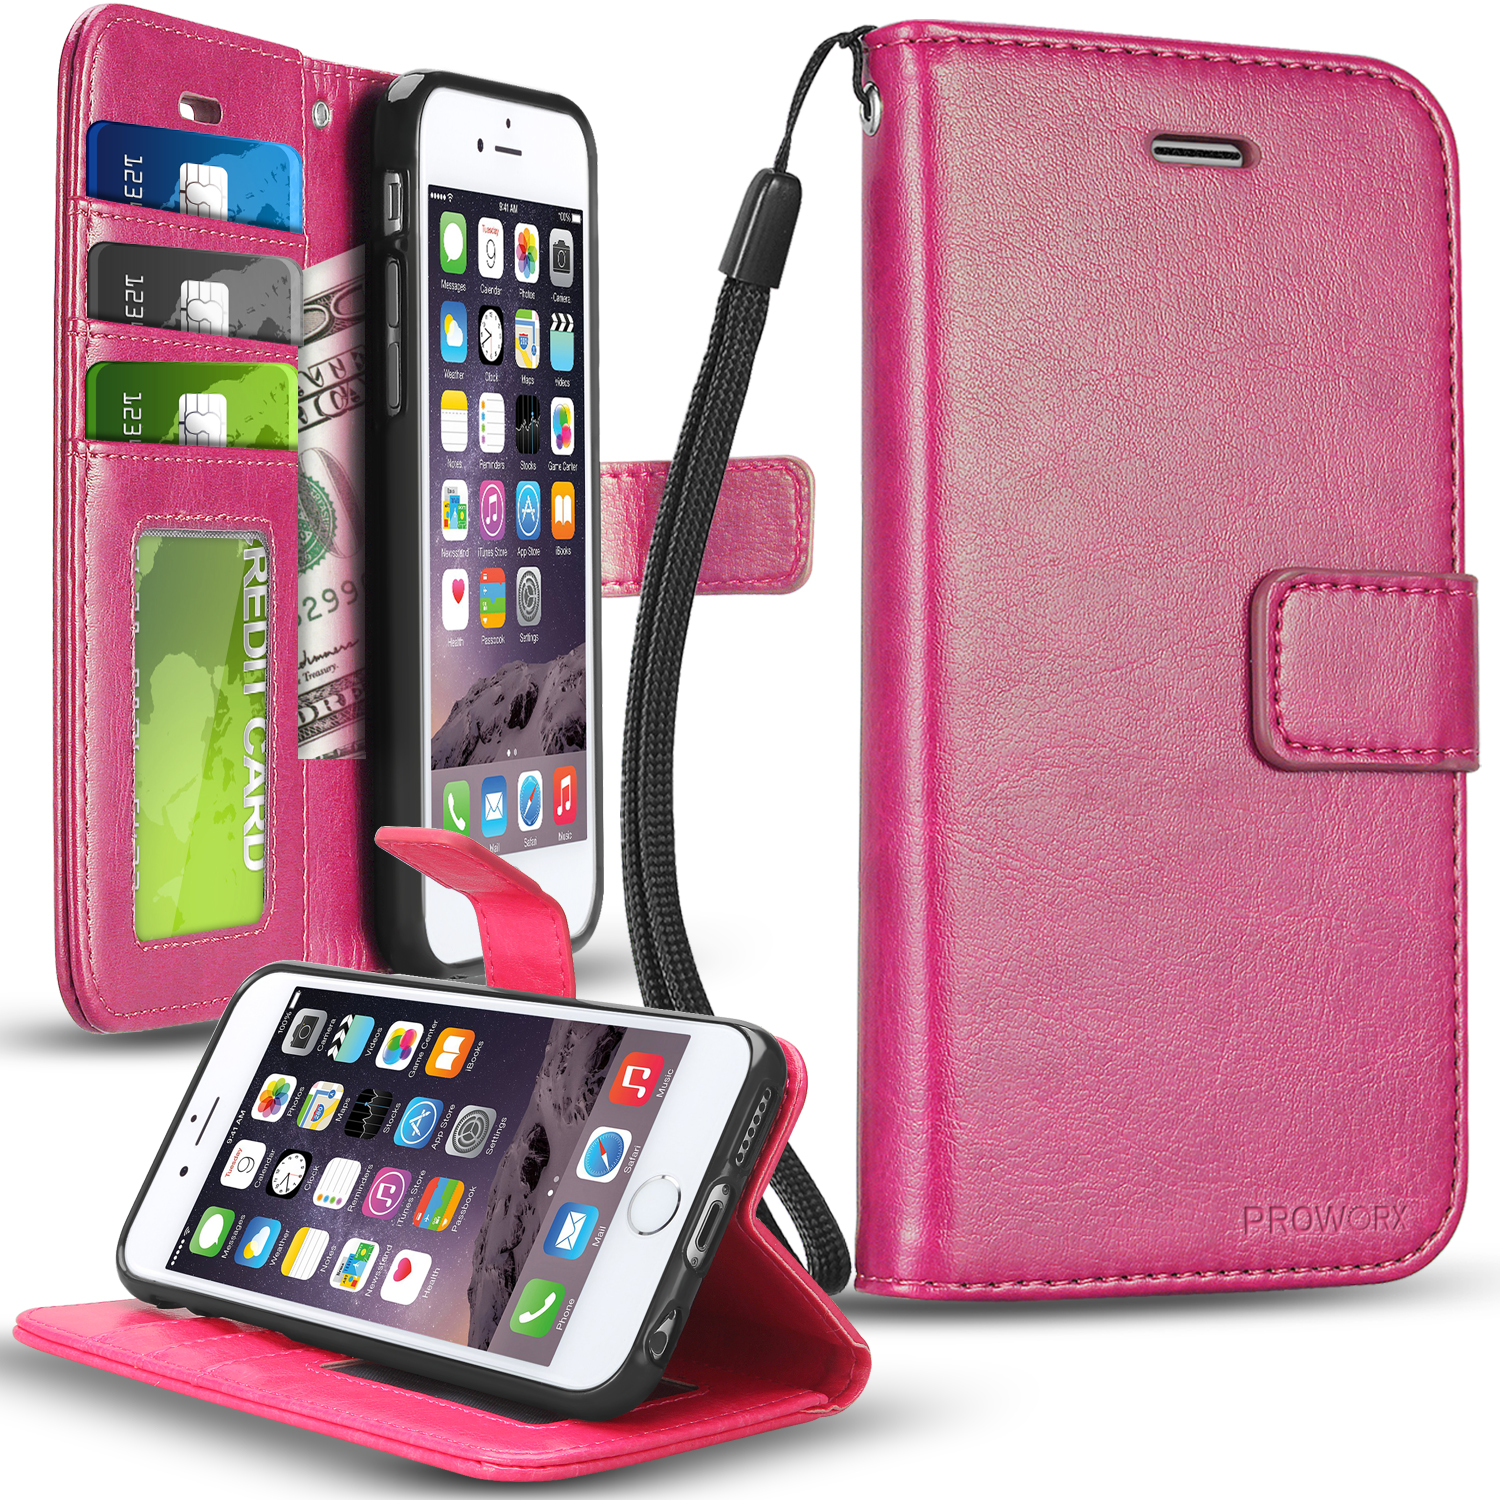 Apple iPhone 6 Plus Hot Pink ProWorx Wallet Case Luxury PU Leather Case Cover With Card Slots & Stand